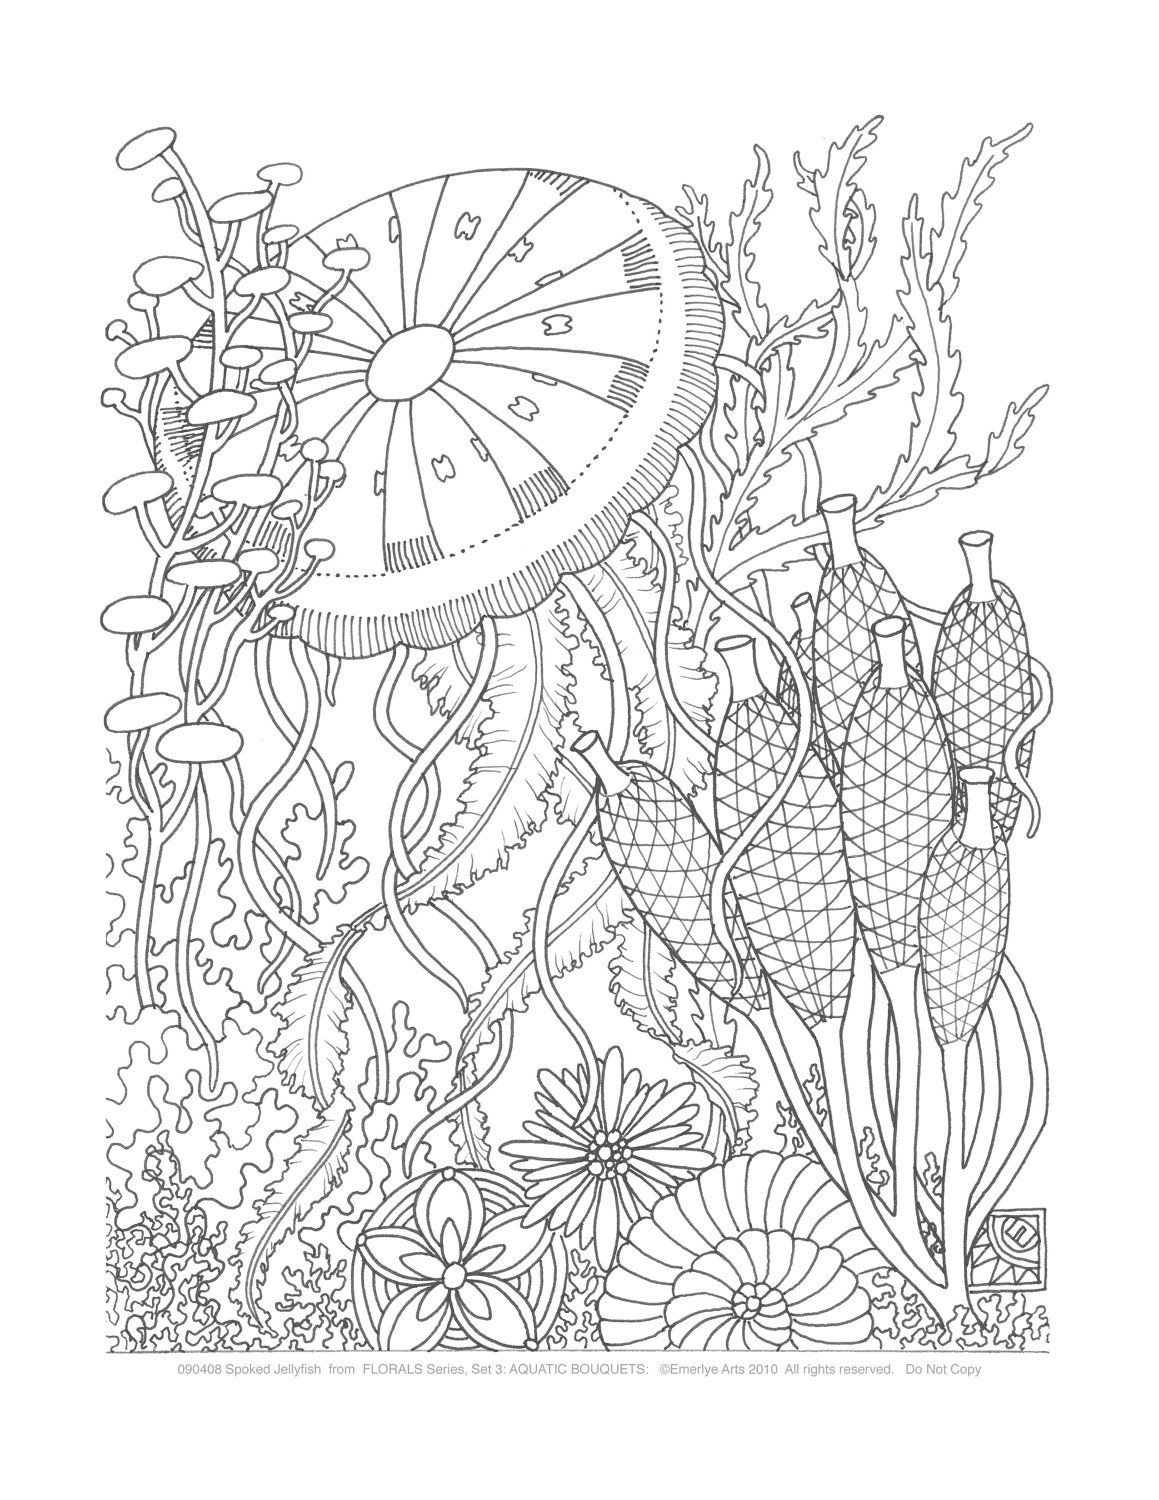 coloring pages aquatic bouquets set of 8 by emerlyearts